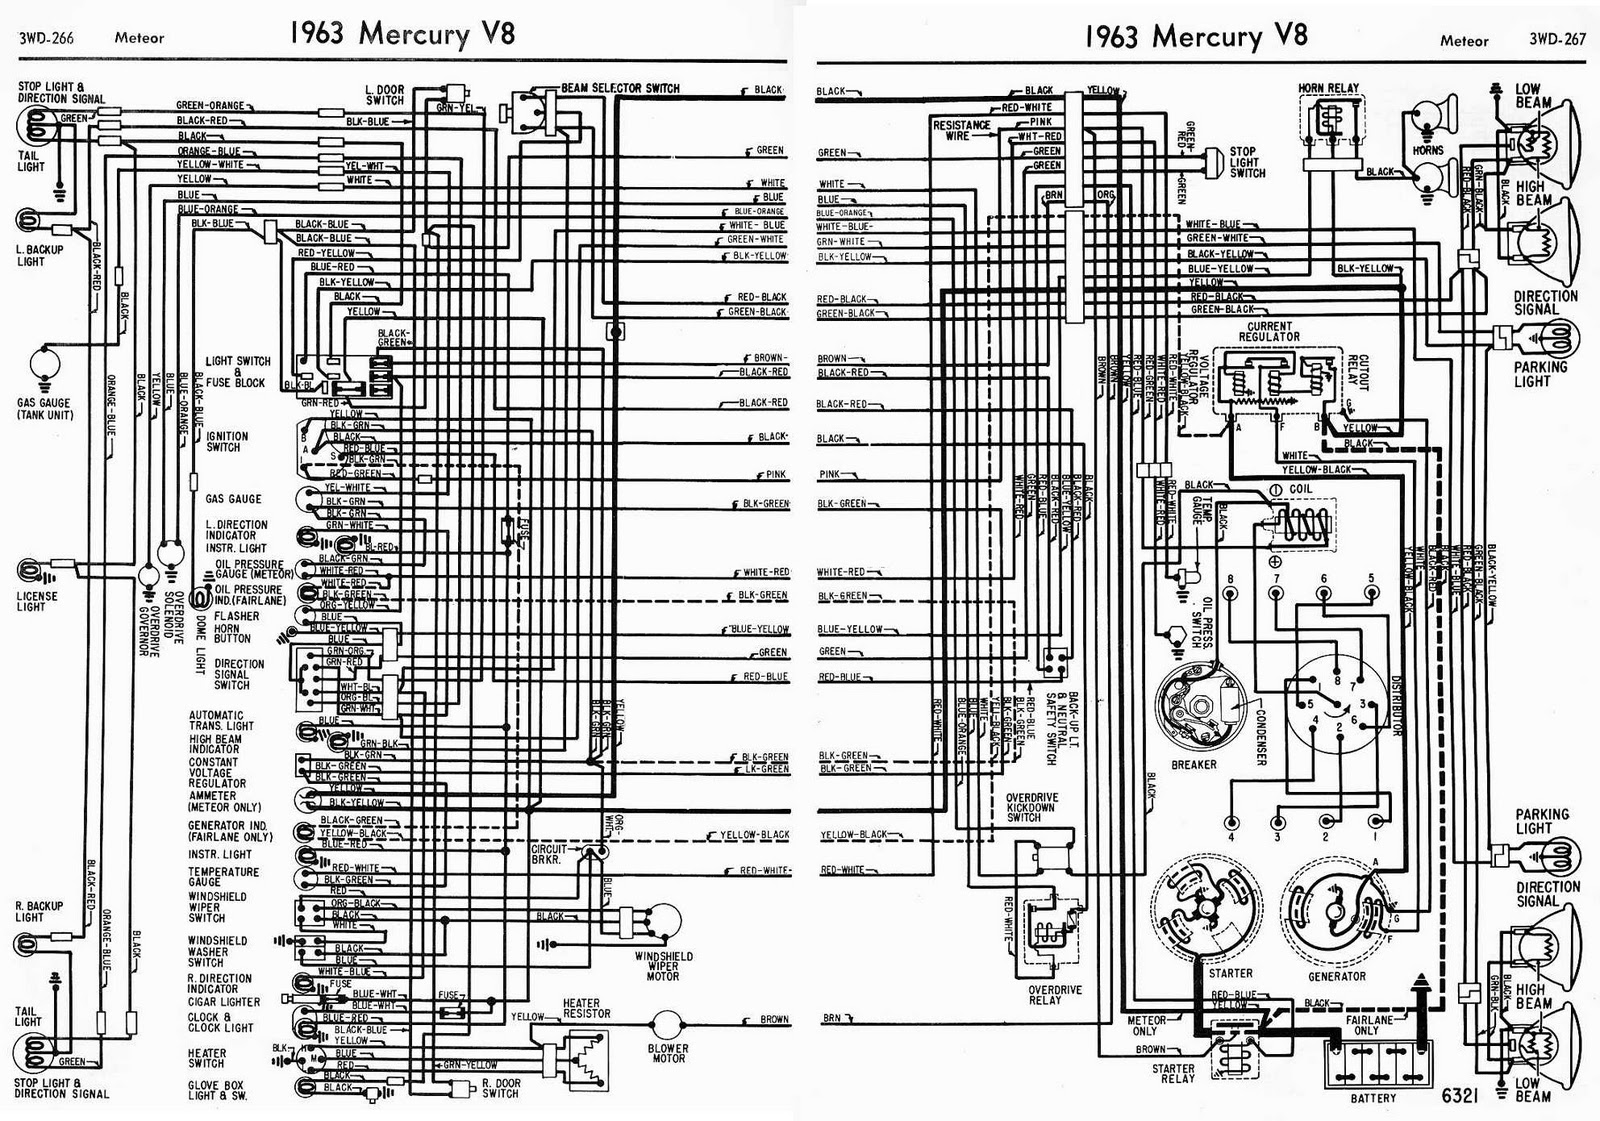 1981 F100 Wiring Diagram Electrical Wiring Diagrams 1966 Ford Thunderbird  Wiring Diagram 1963 Ford Van Wiring Diagram